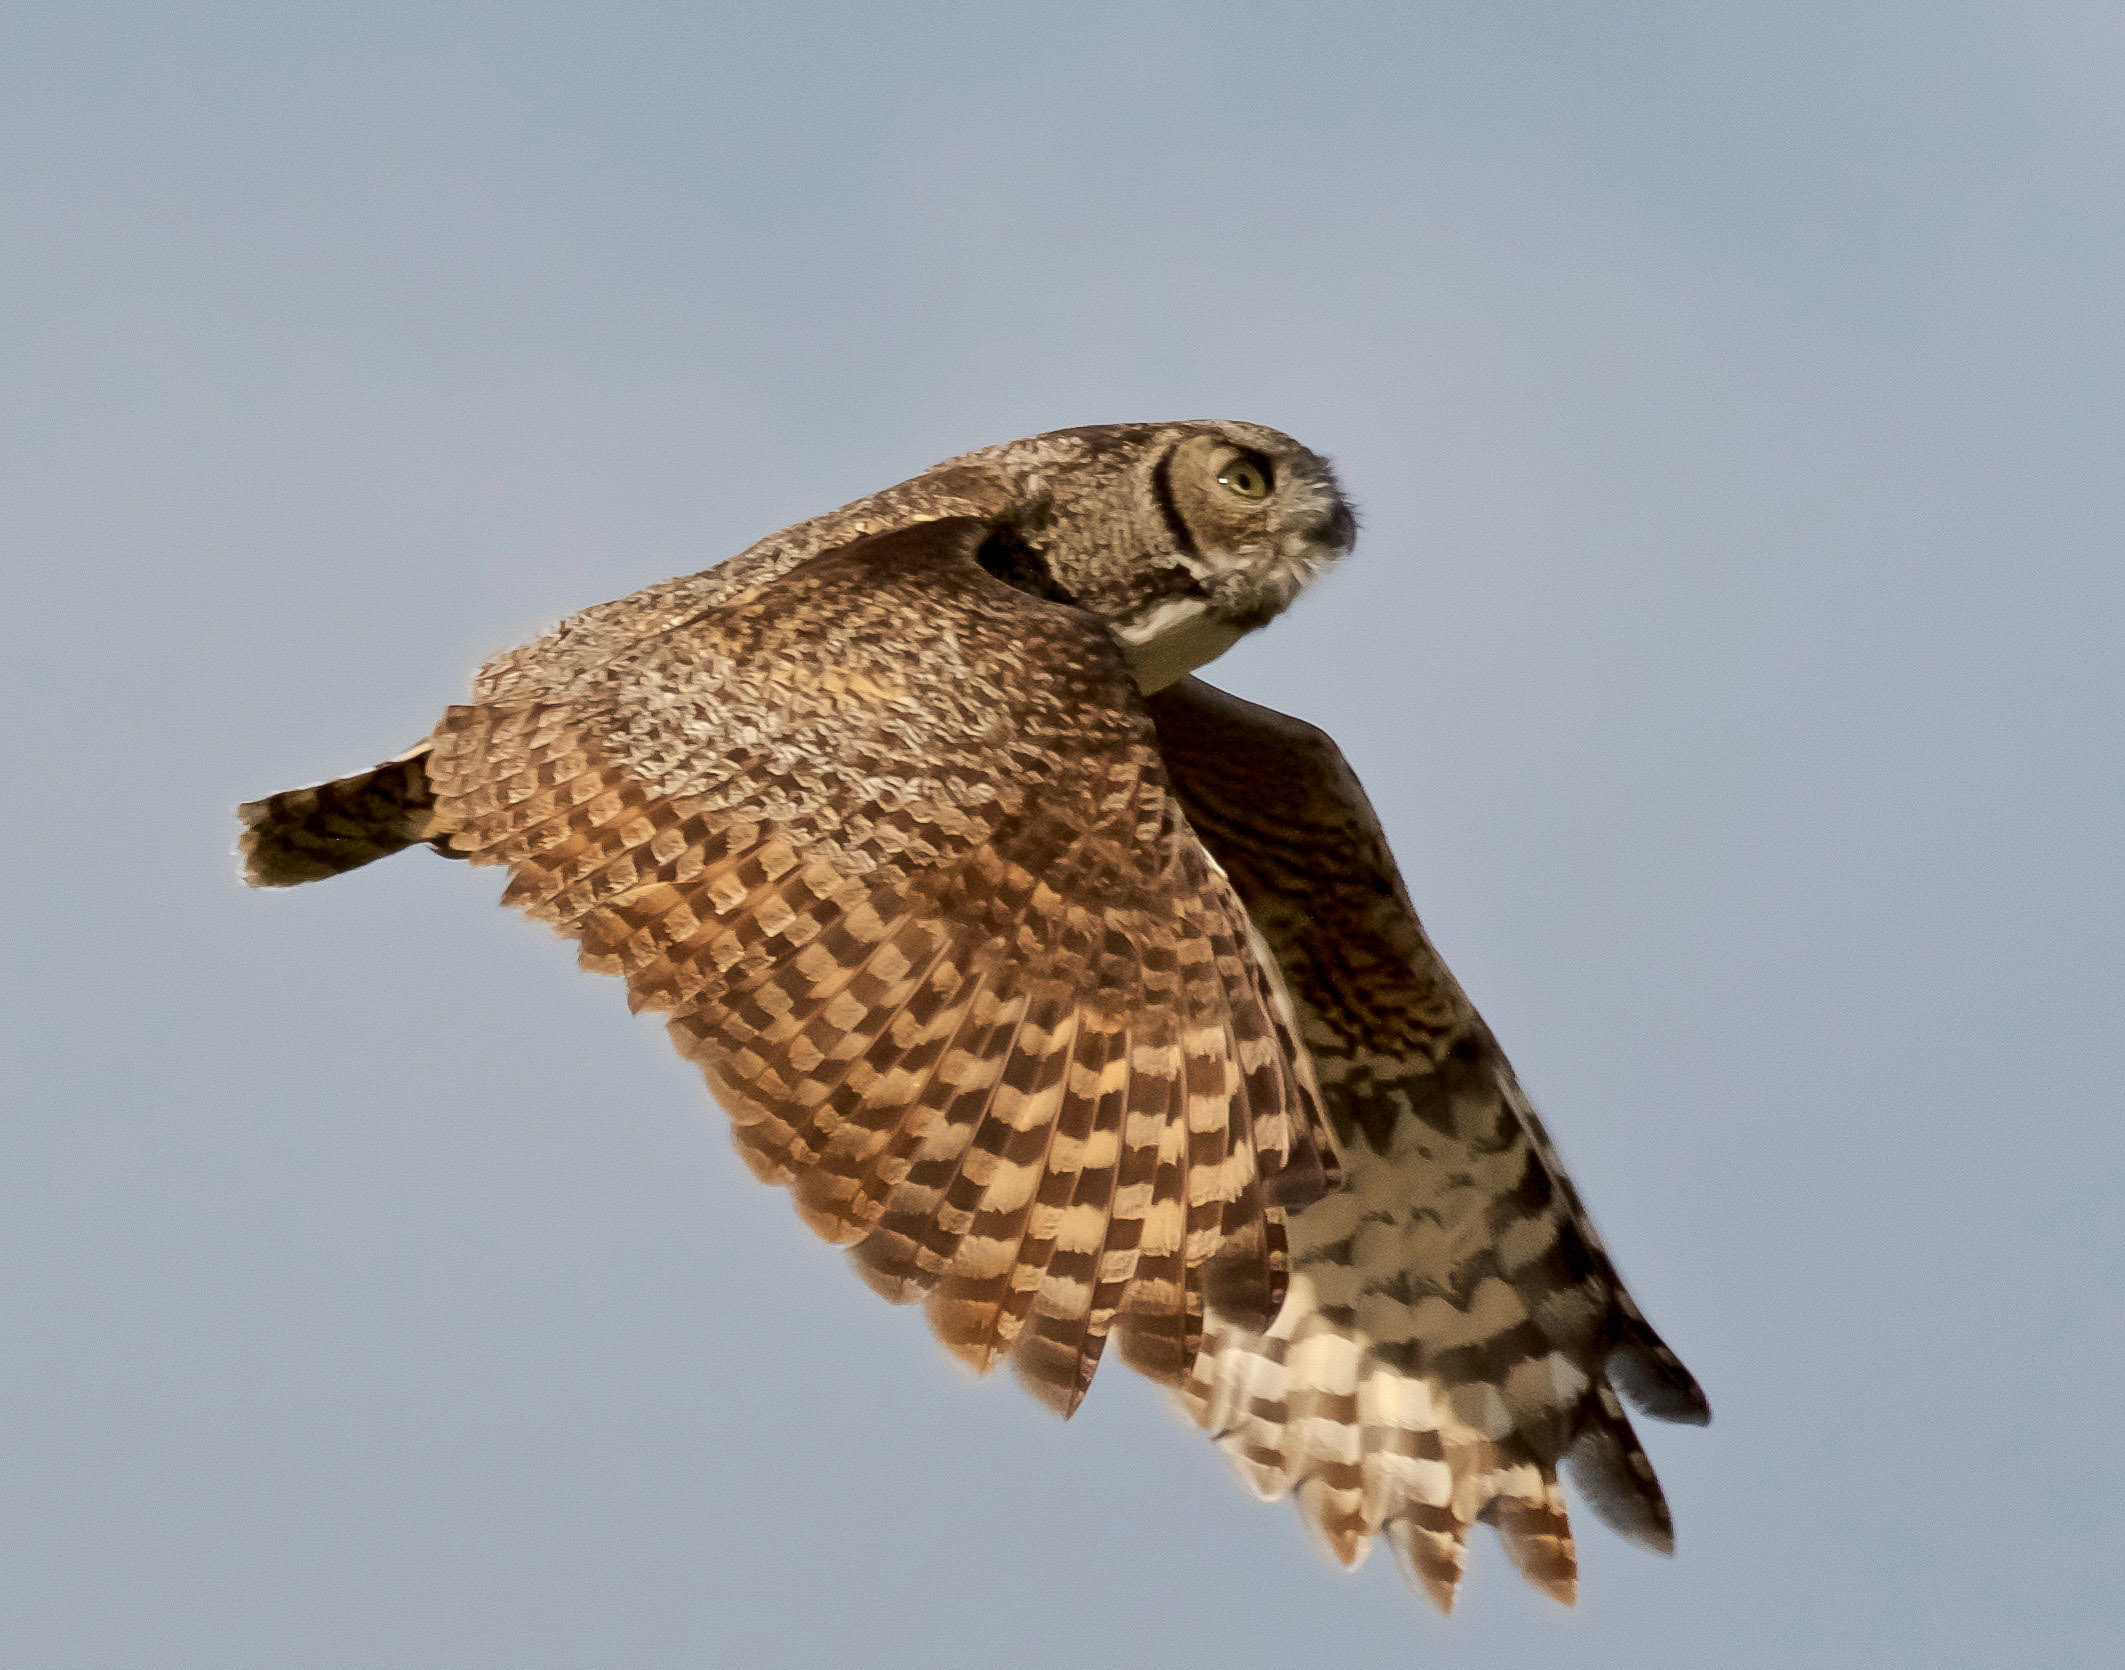 A great horned owl in flight in good lighting with good focus